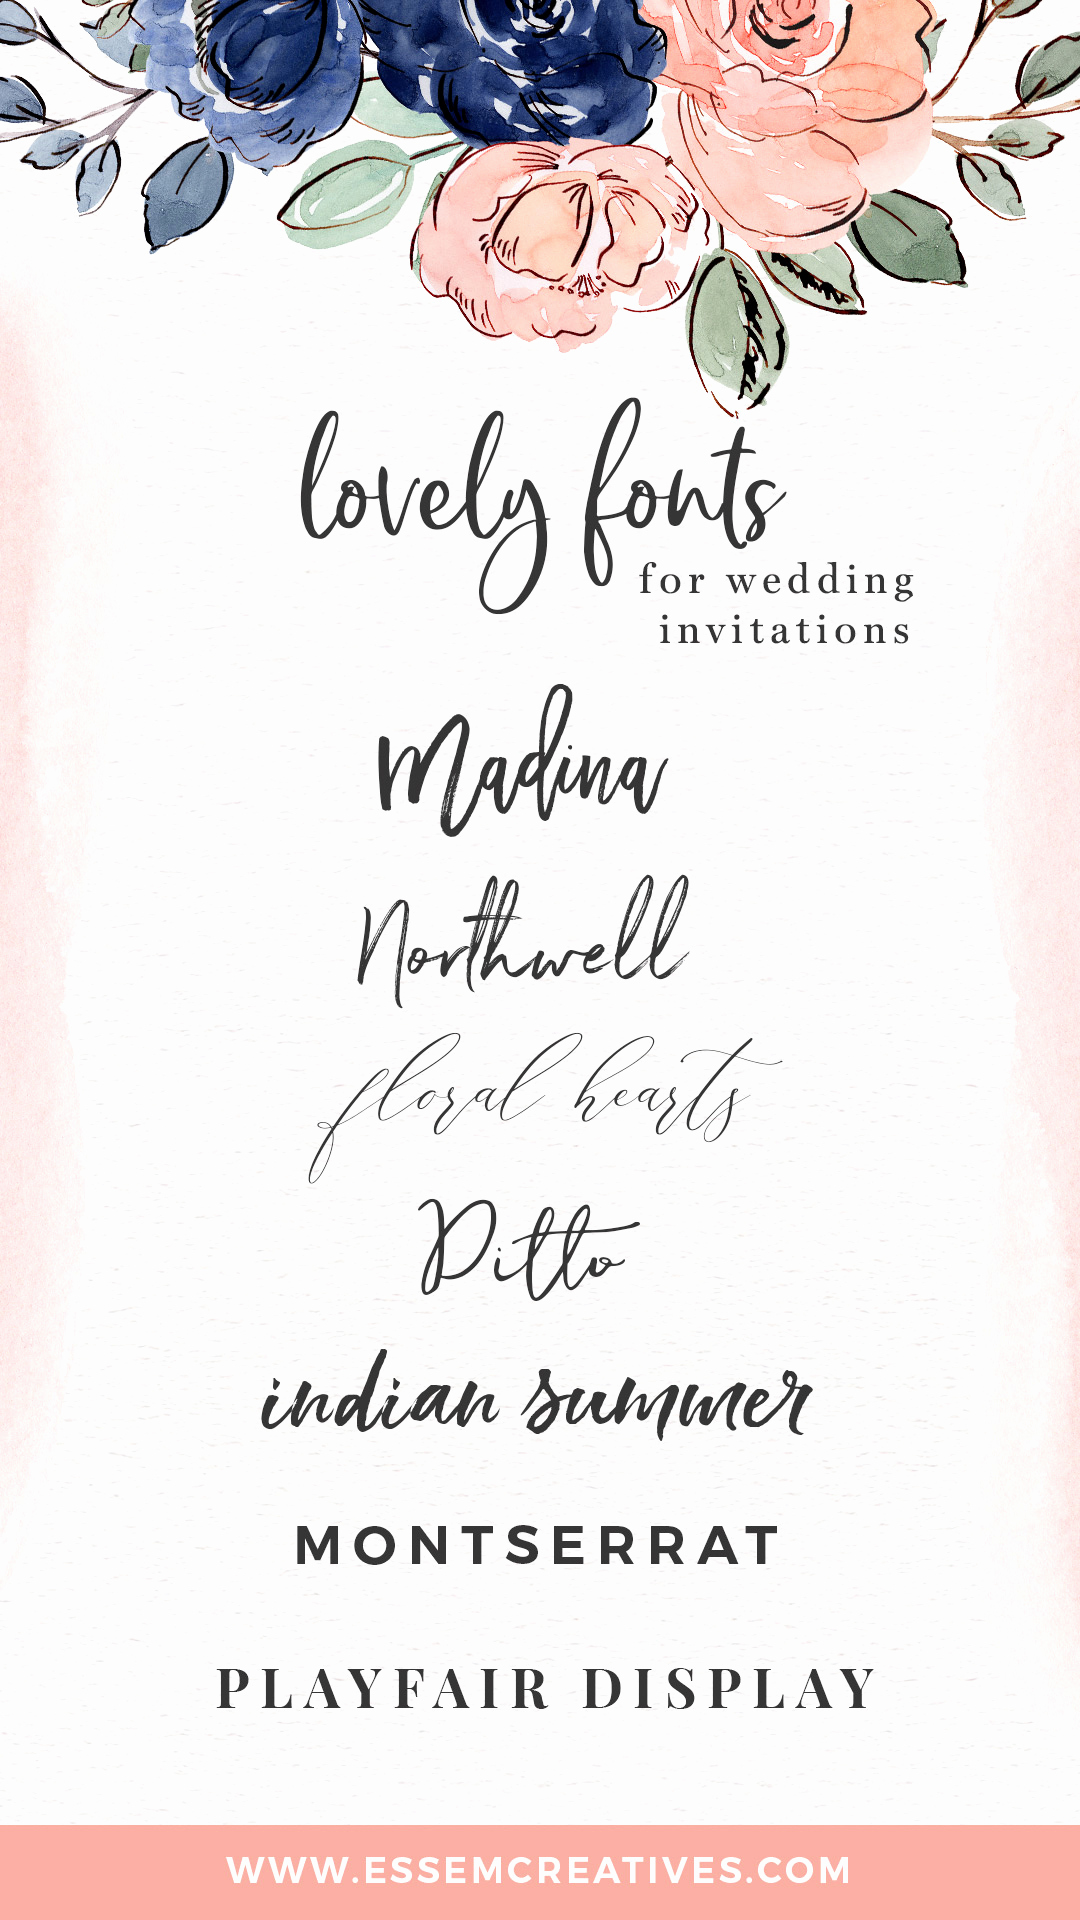 Best Wedding Invitation Designs Inspirational My Favorite Fonts for Wedding Invitation Designs Essem